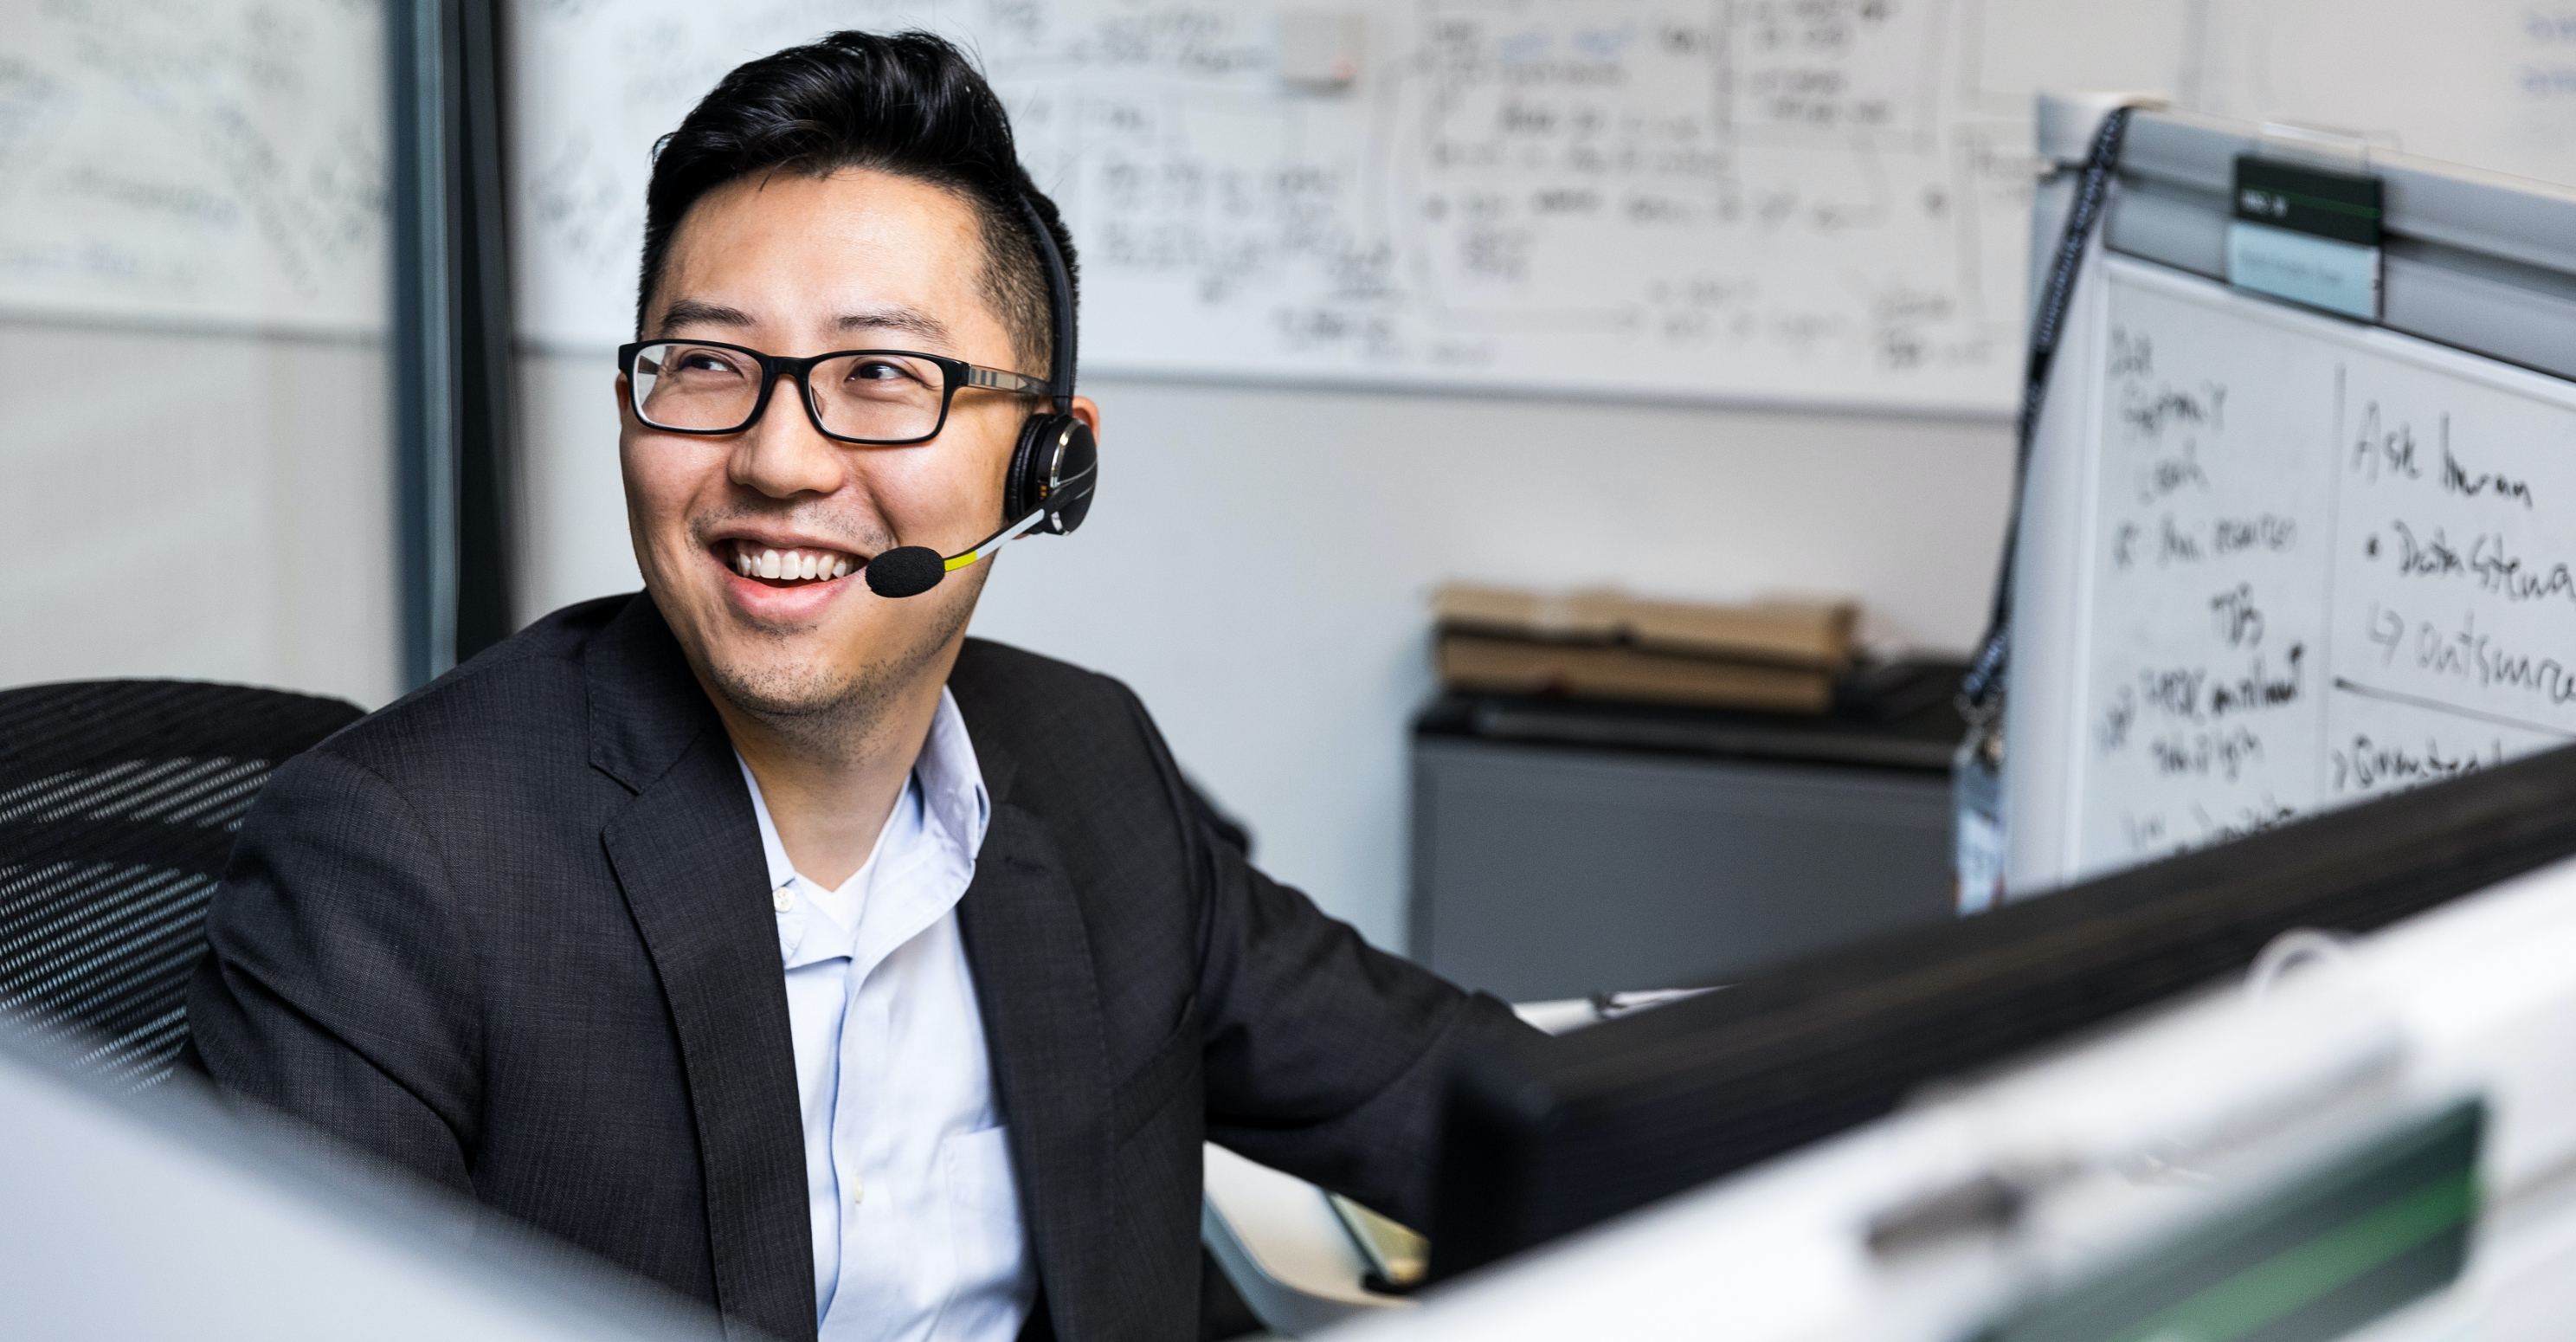 A person smiling while wearing a headset and working at their desk.